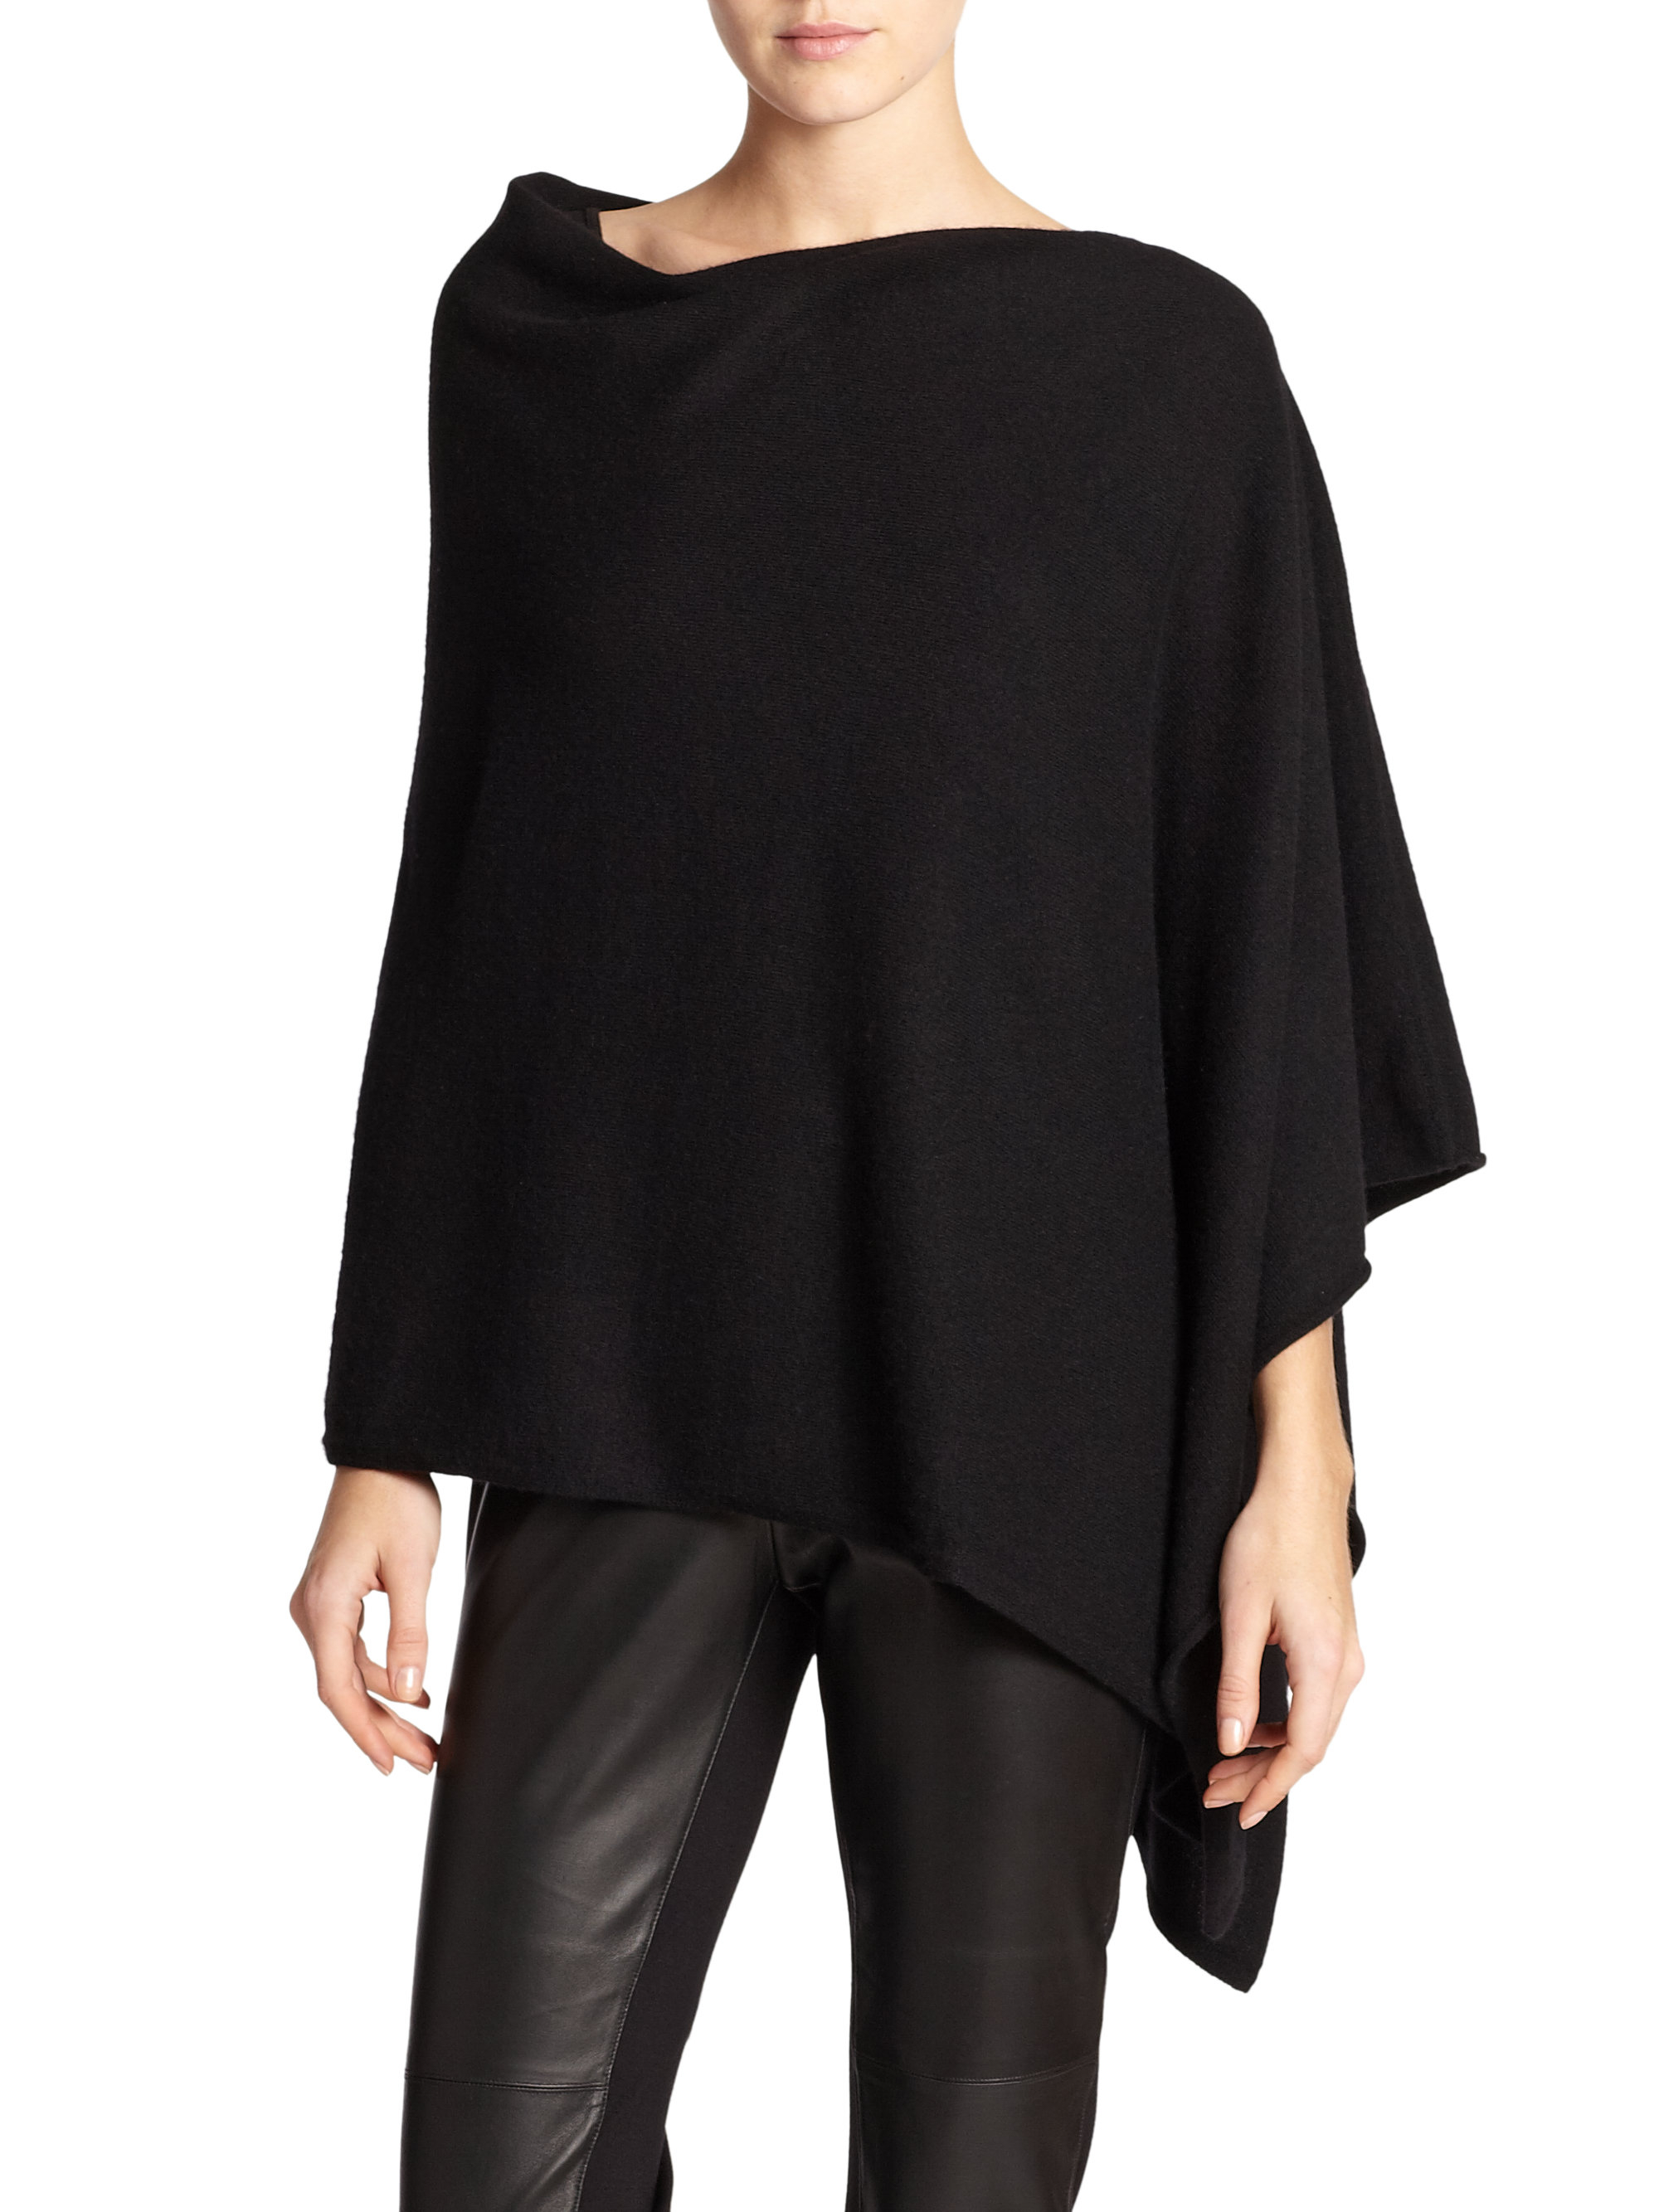 Poncho Sweater For Women